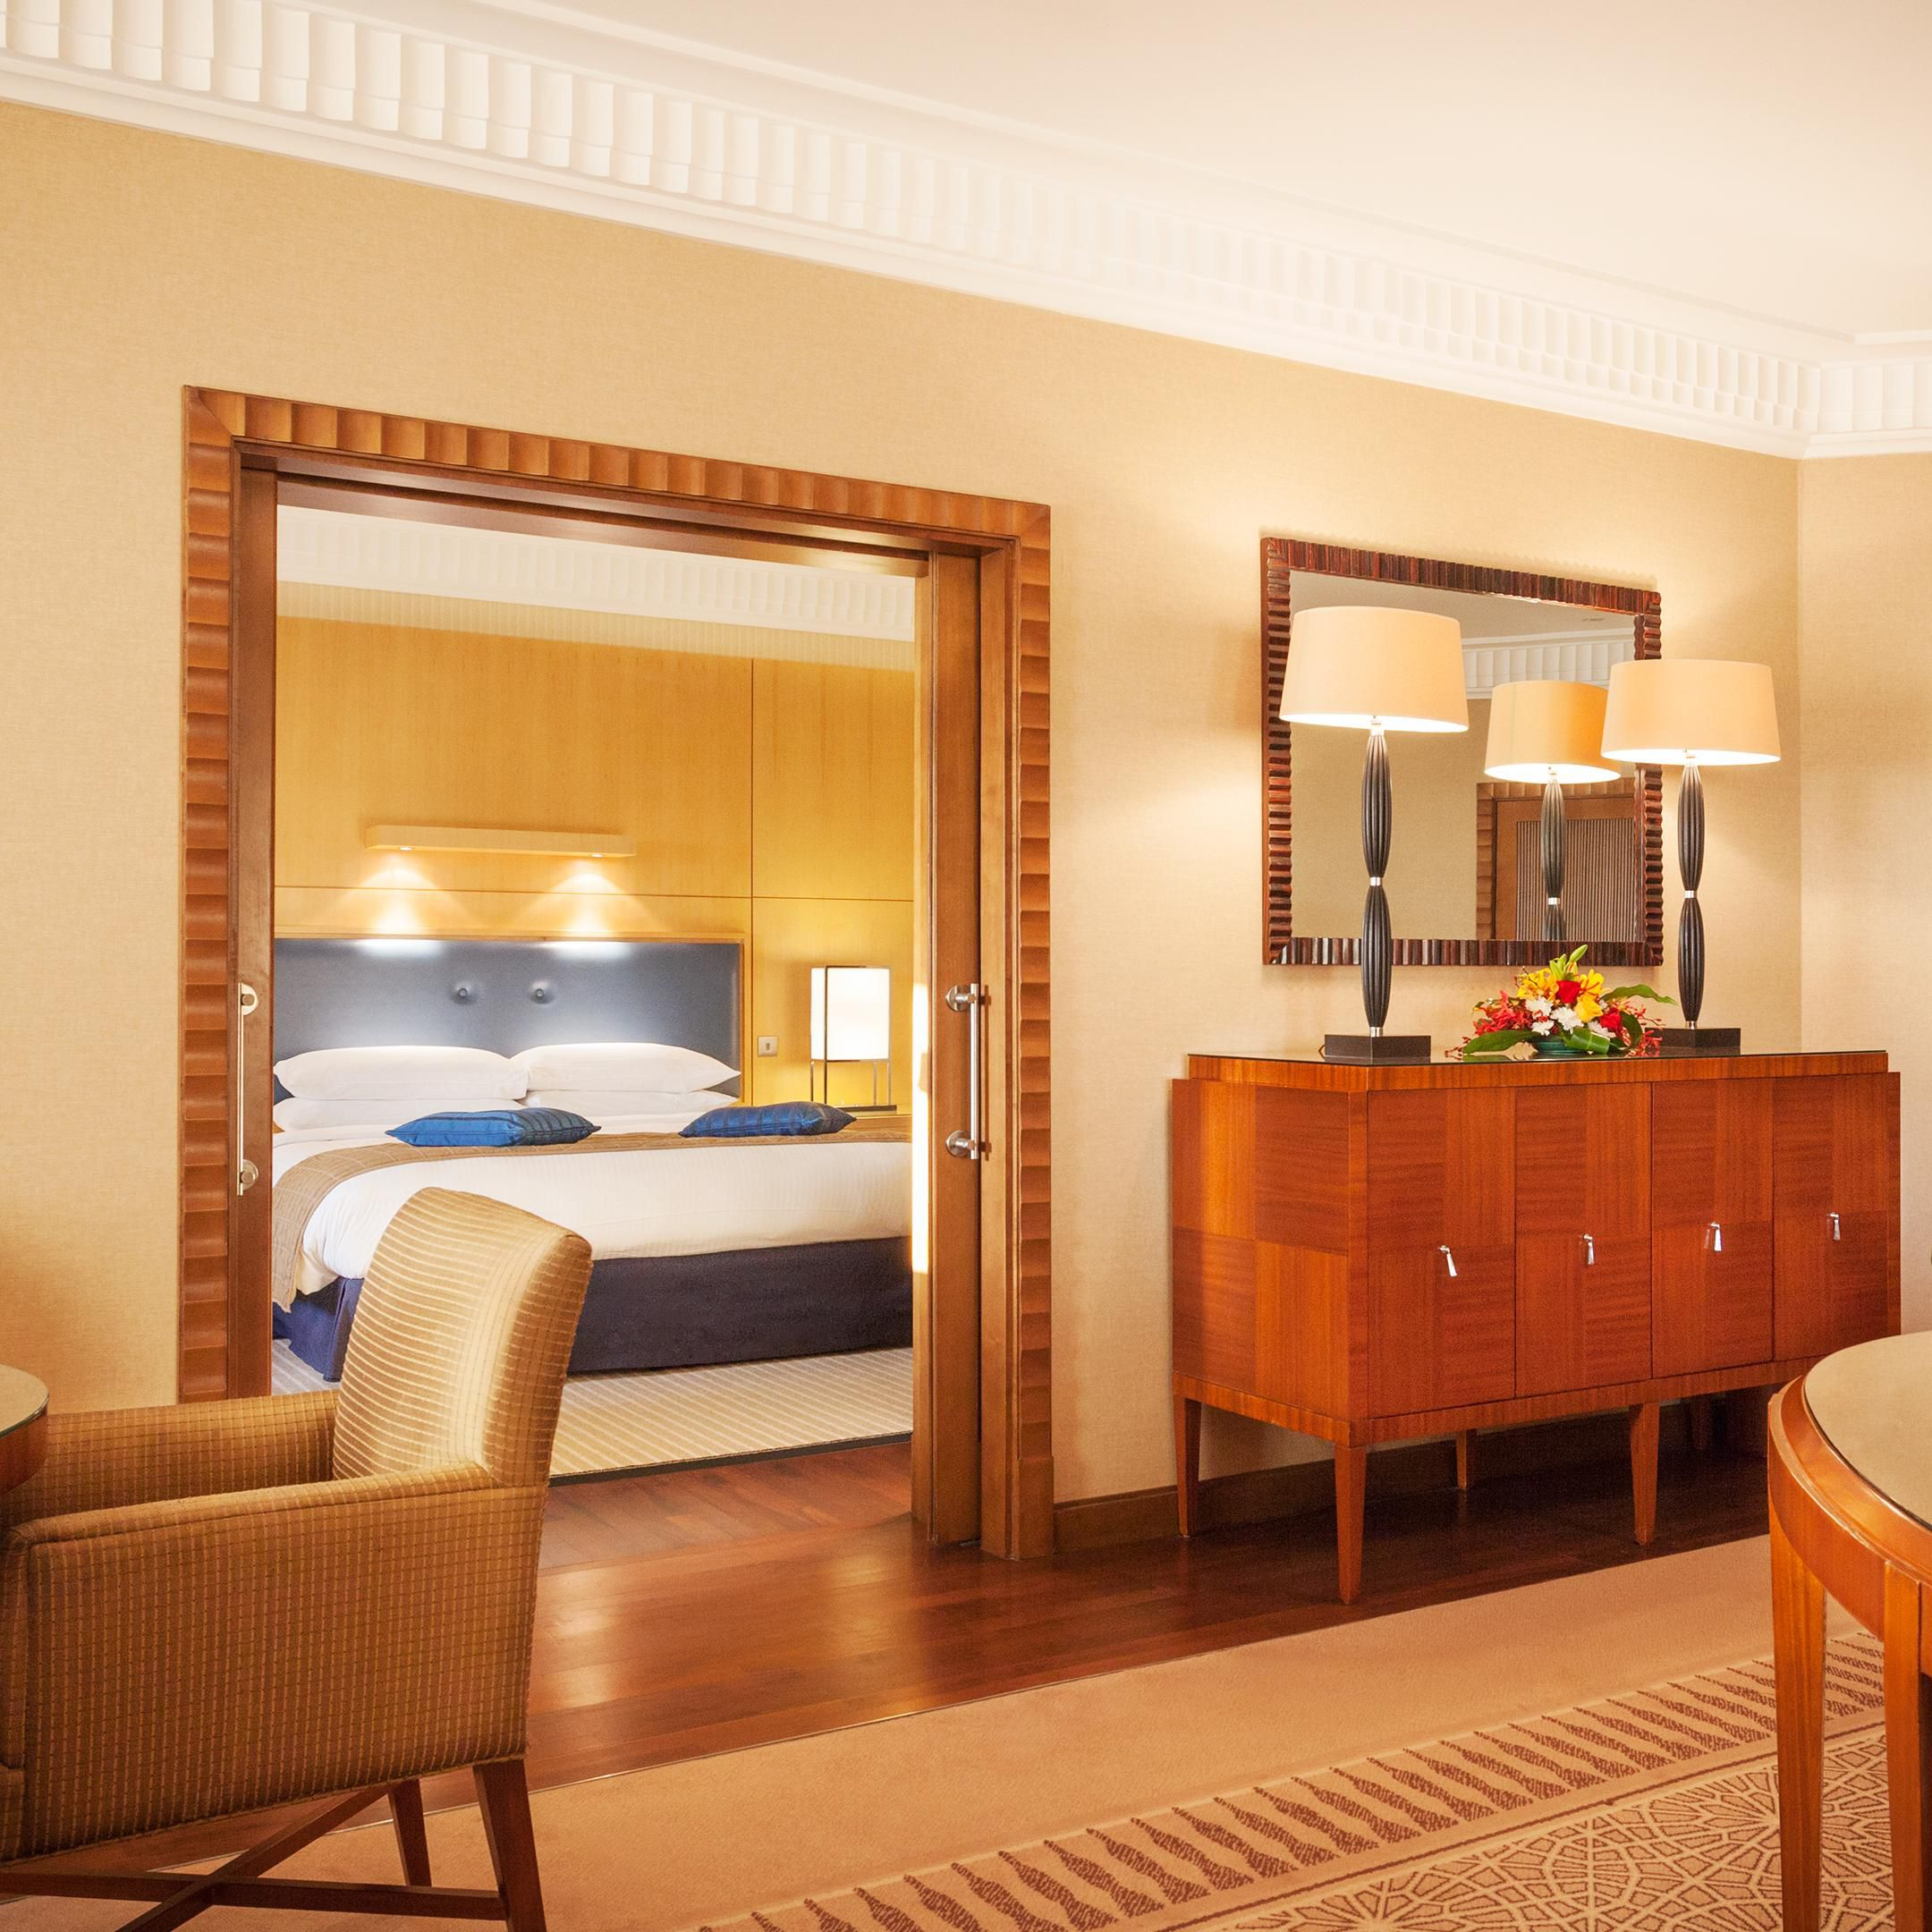 Bedroom Furniture Riyadh riyadh hotels: intercontinental riyadh hotel in riyadh, saudi arabia